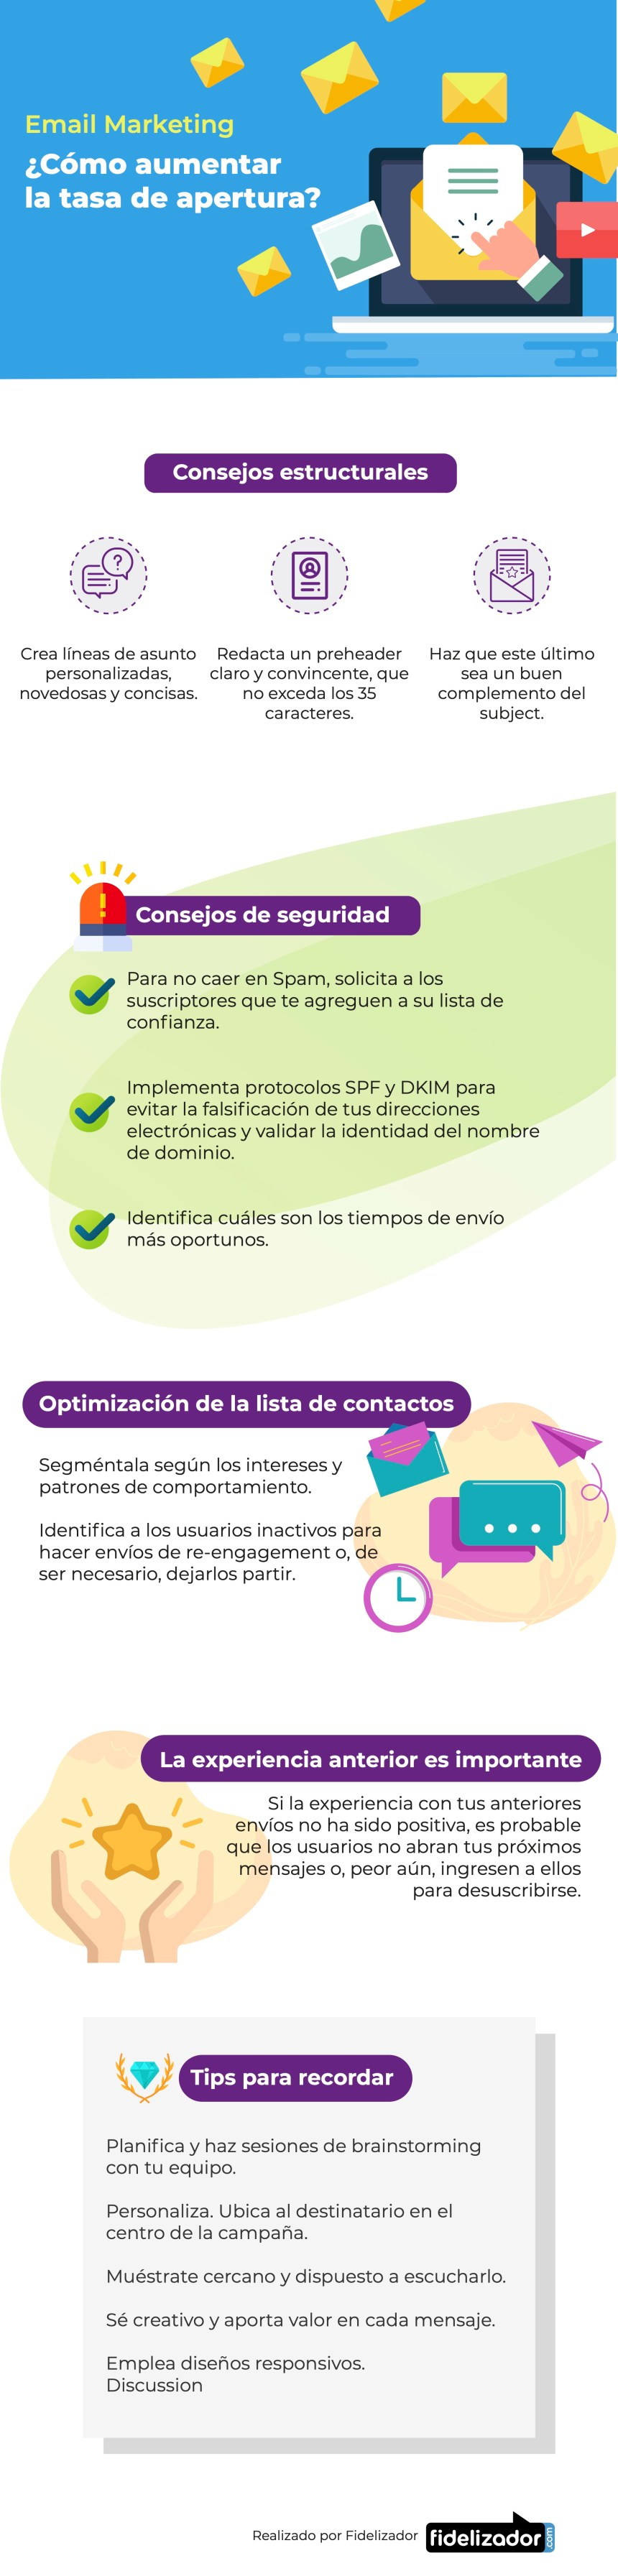 Cómo aumentar la tasa de apertura en Email Marketing